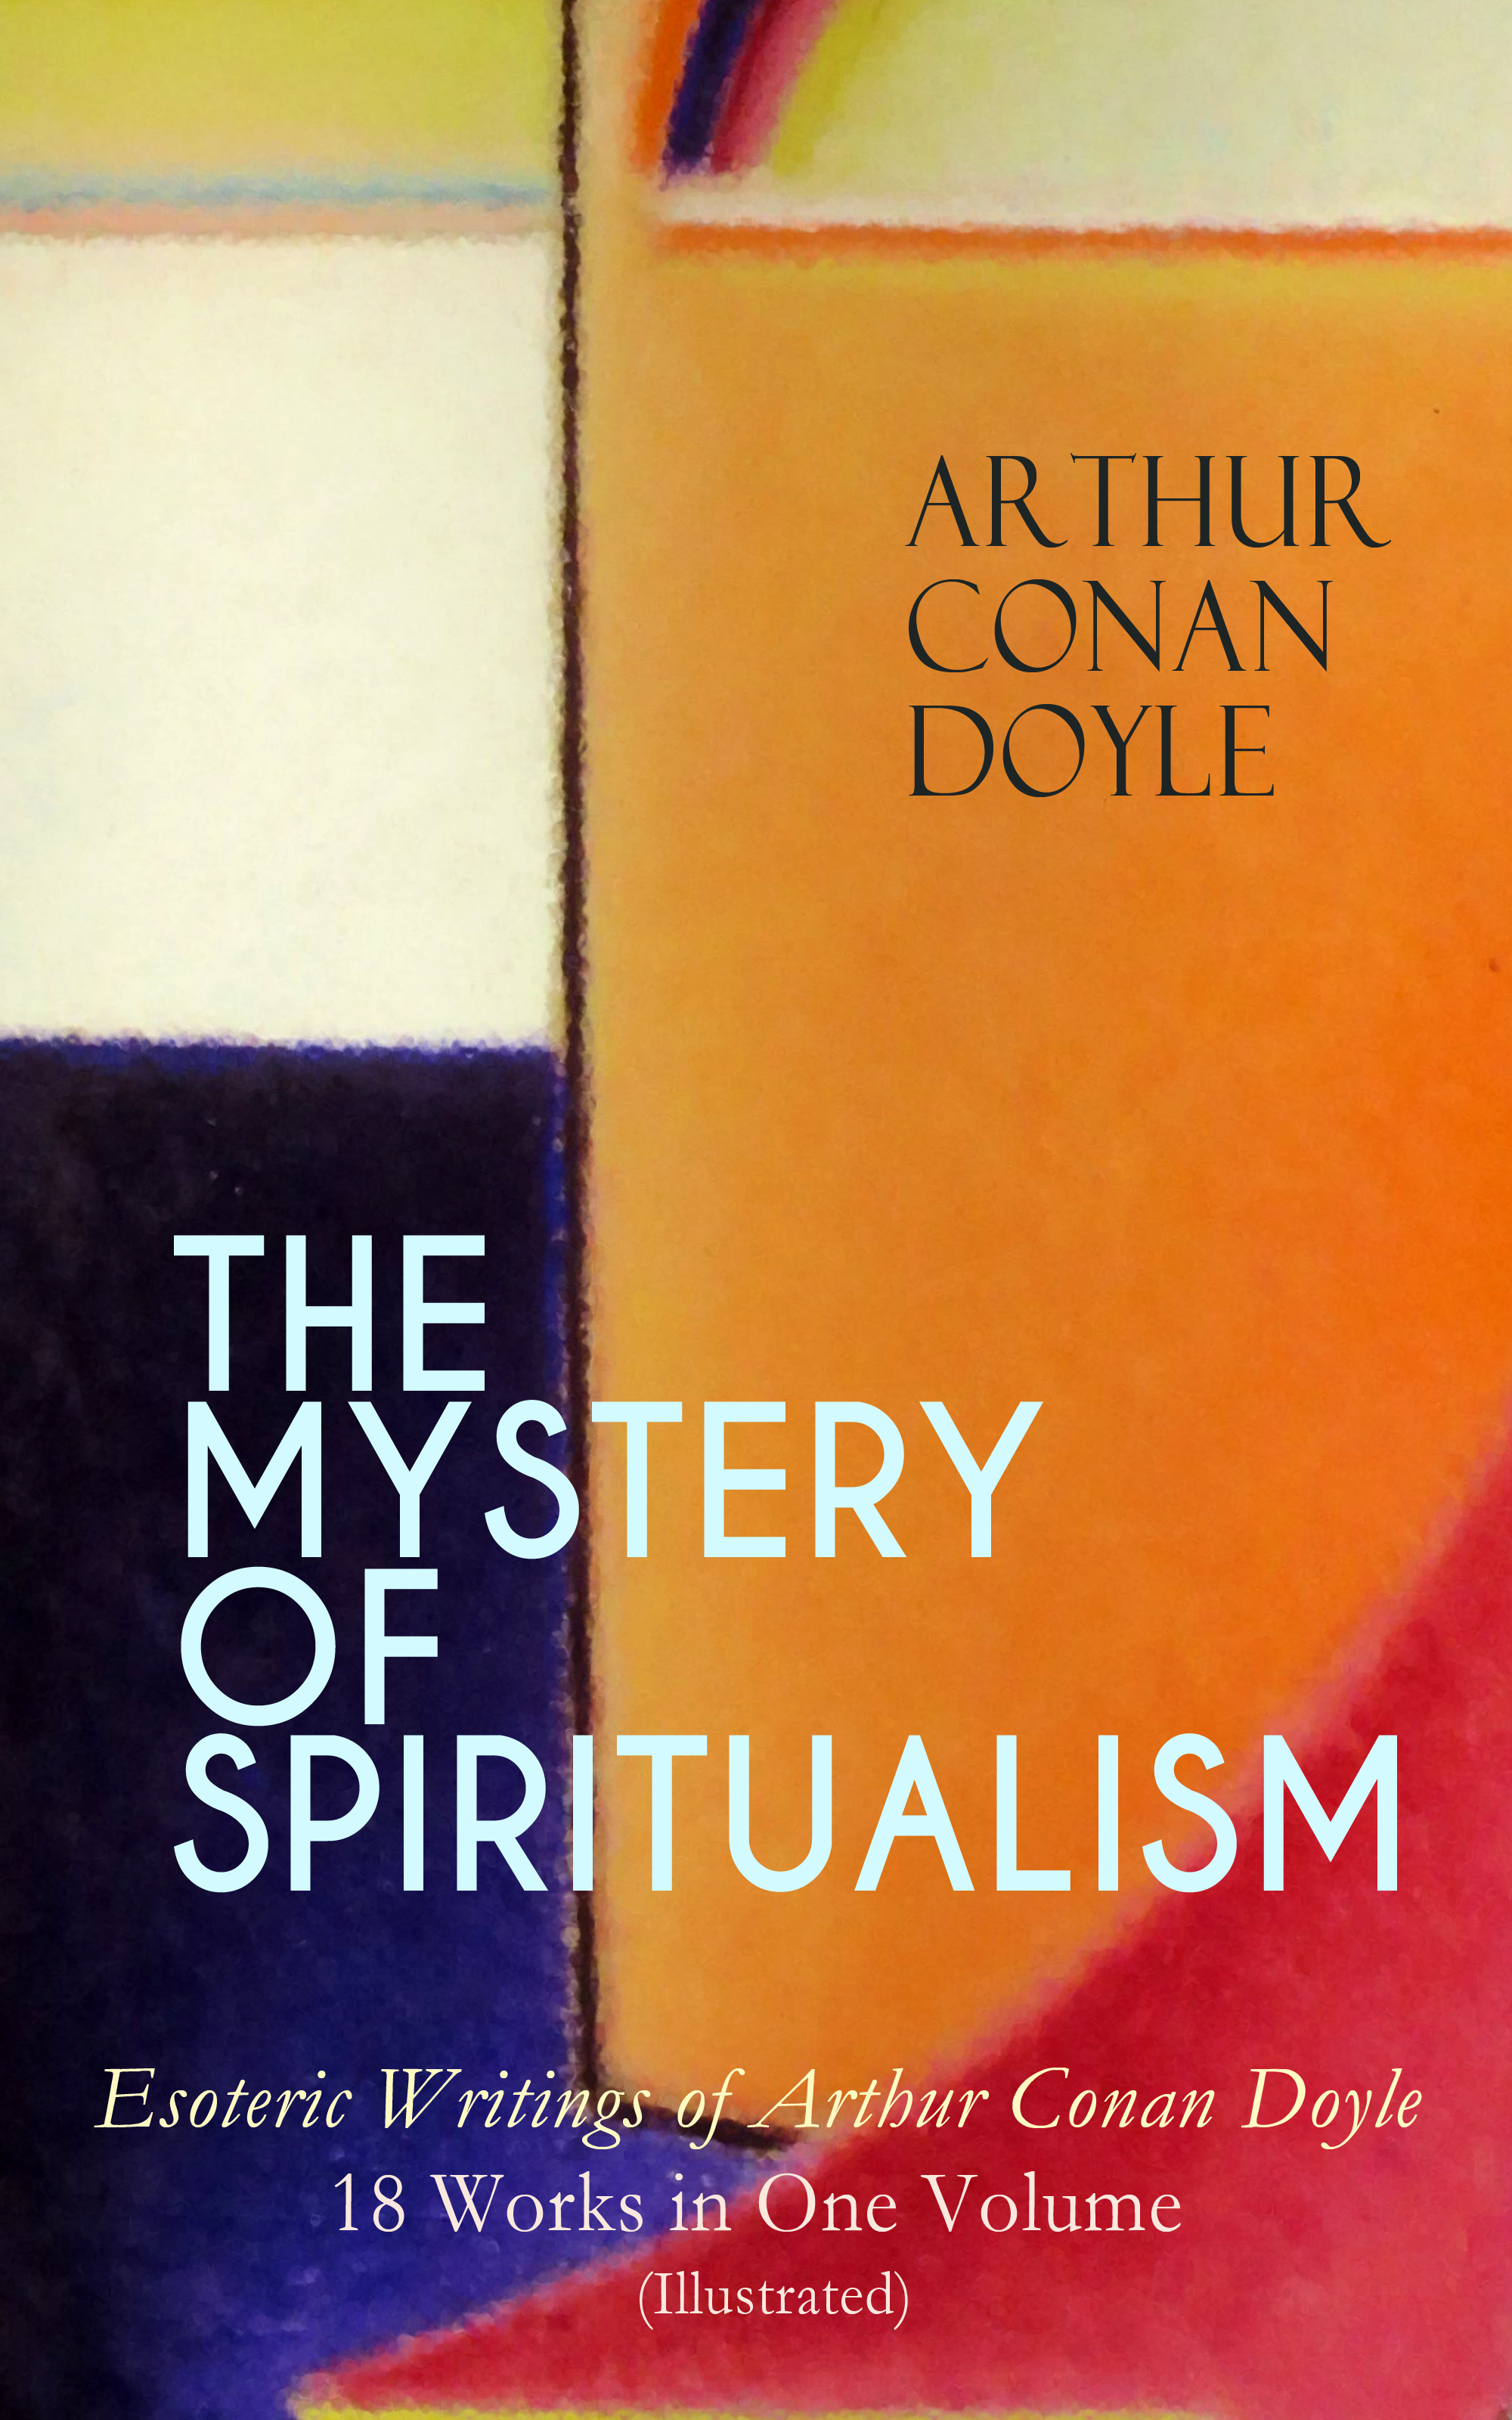 Arthur Conan Doyle THE MYSTERY OF SPIRITUALISM – Esoteric Writings of Arthur Conan Doyle: 18 Works in One Volume (Illustrated) цена и фото